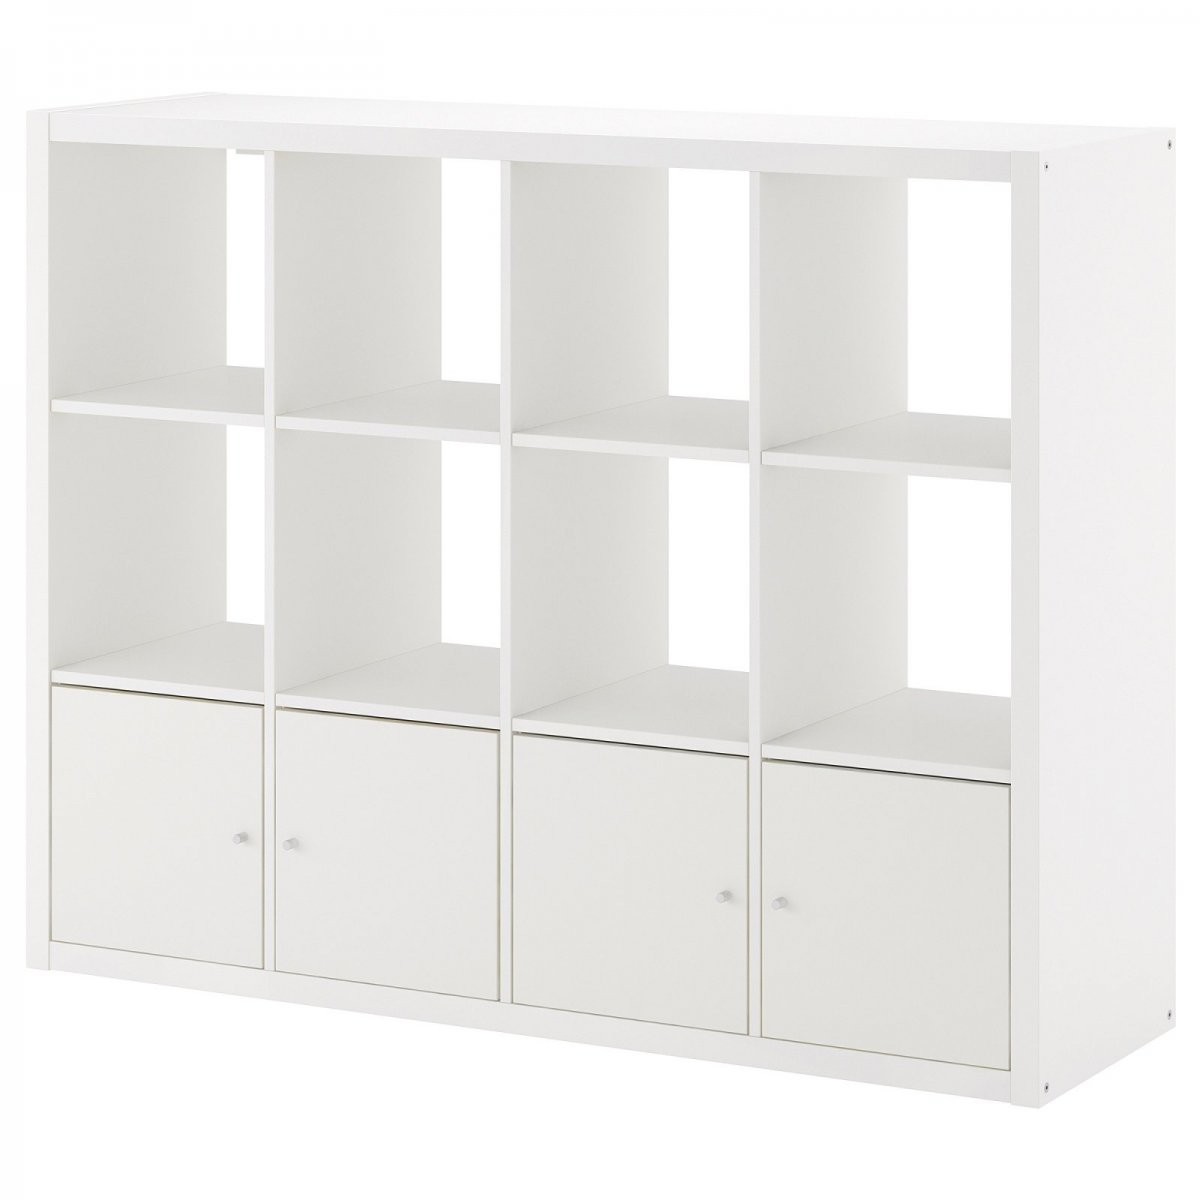 kallax-shelving-unit-with-inserts-white__0619476_PE689112_S5.JPG